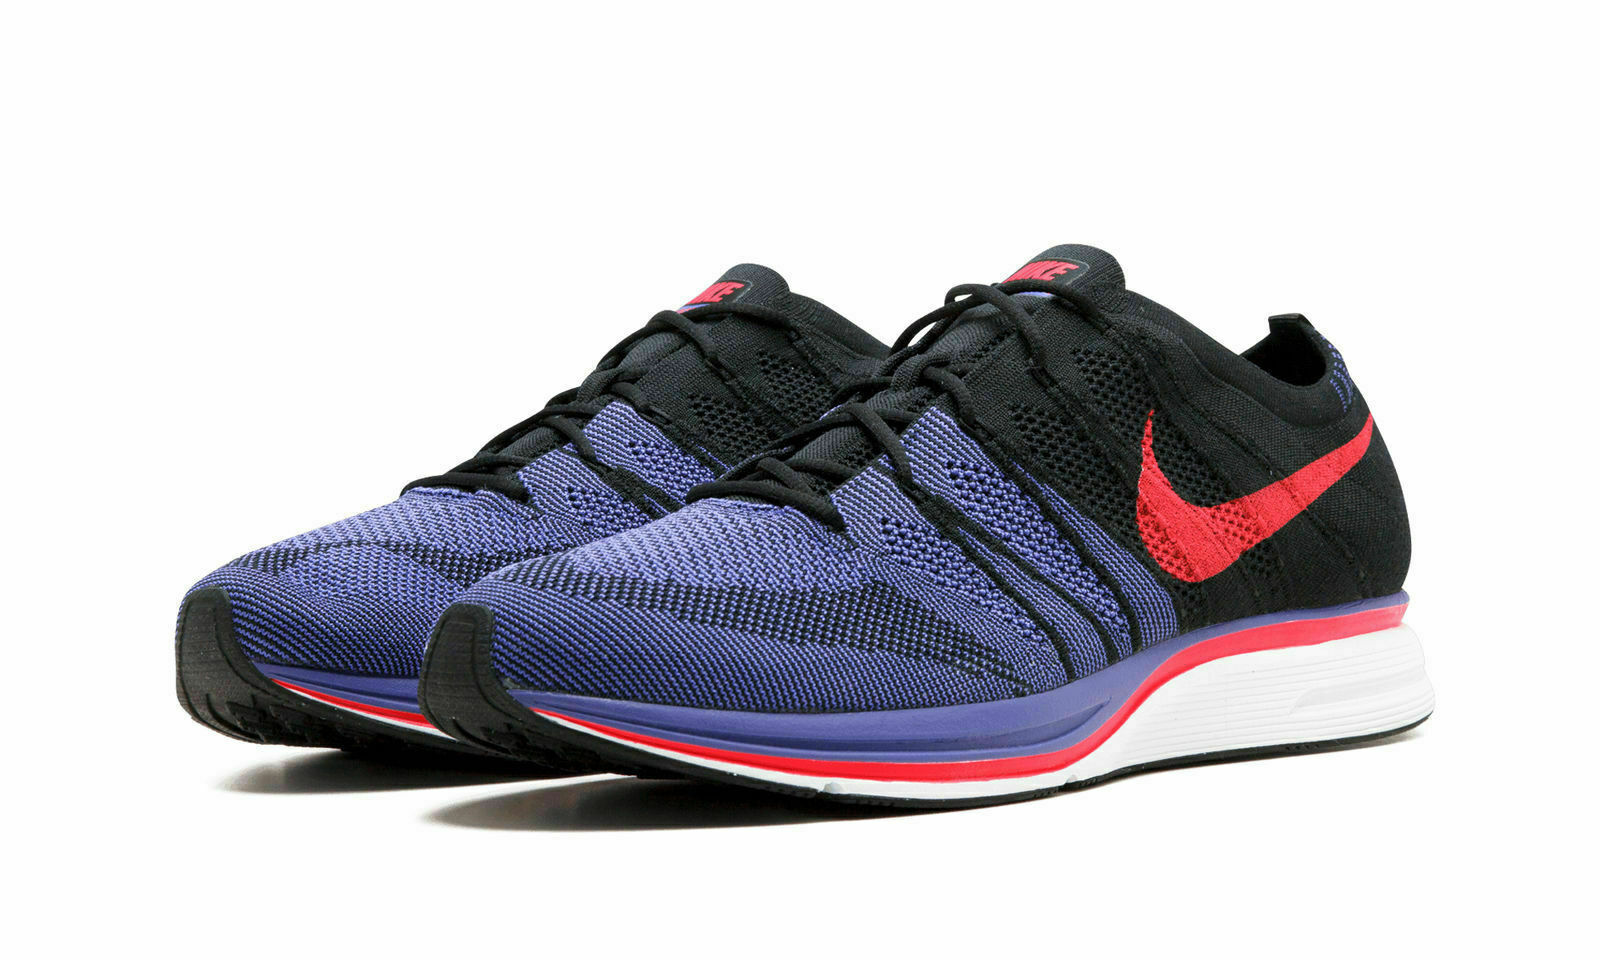 Nike Flyknit Trainer Running shoes Black Red Tgoldnto Raptors NBA AH8396 003 14